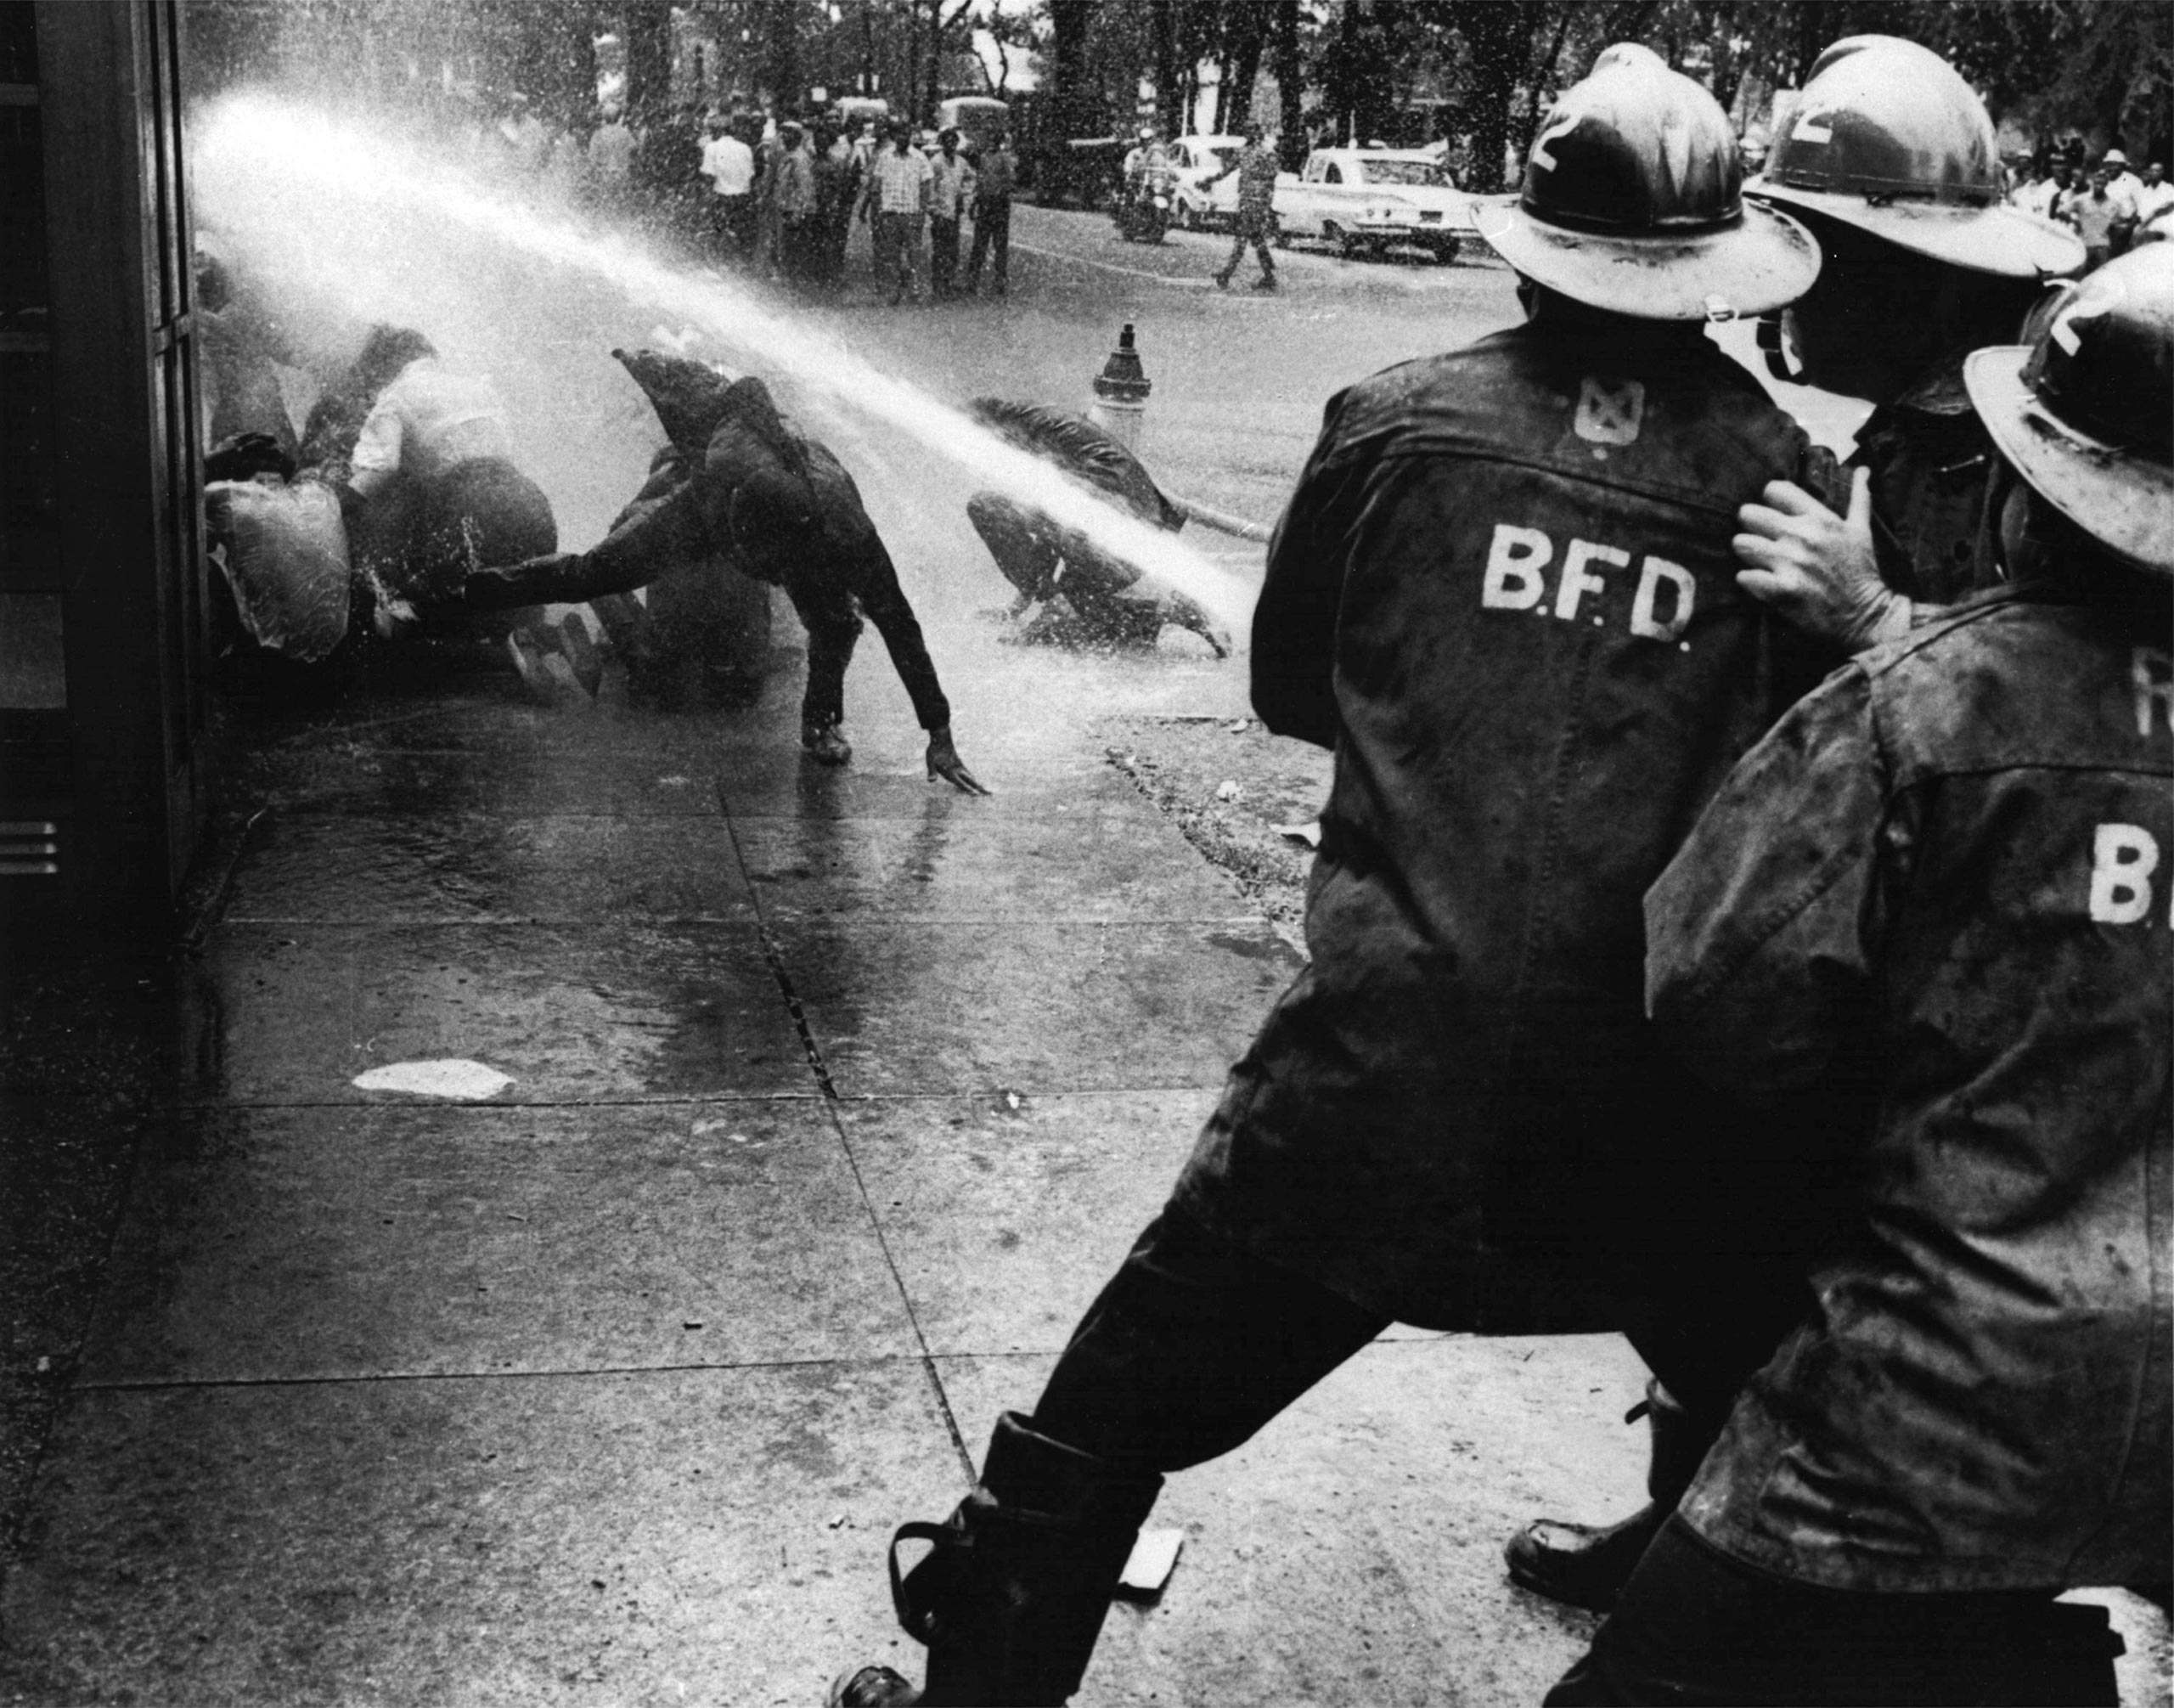 Firefighters turn their hoses full force on civil rights demonstrators in Birmingham, Ala., on July 15, 1963